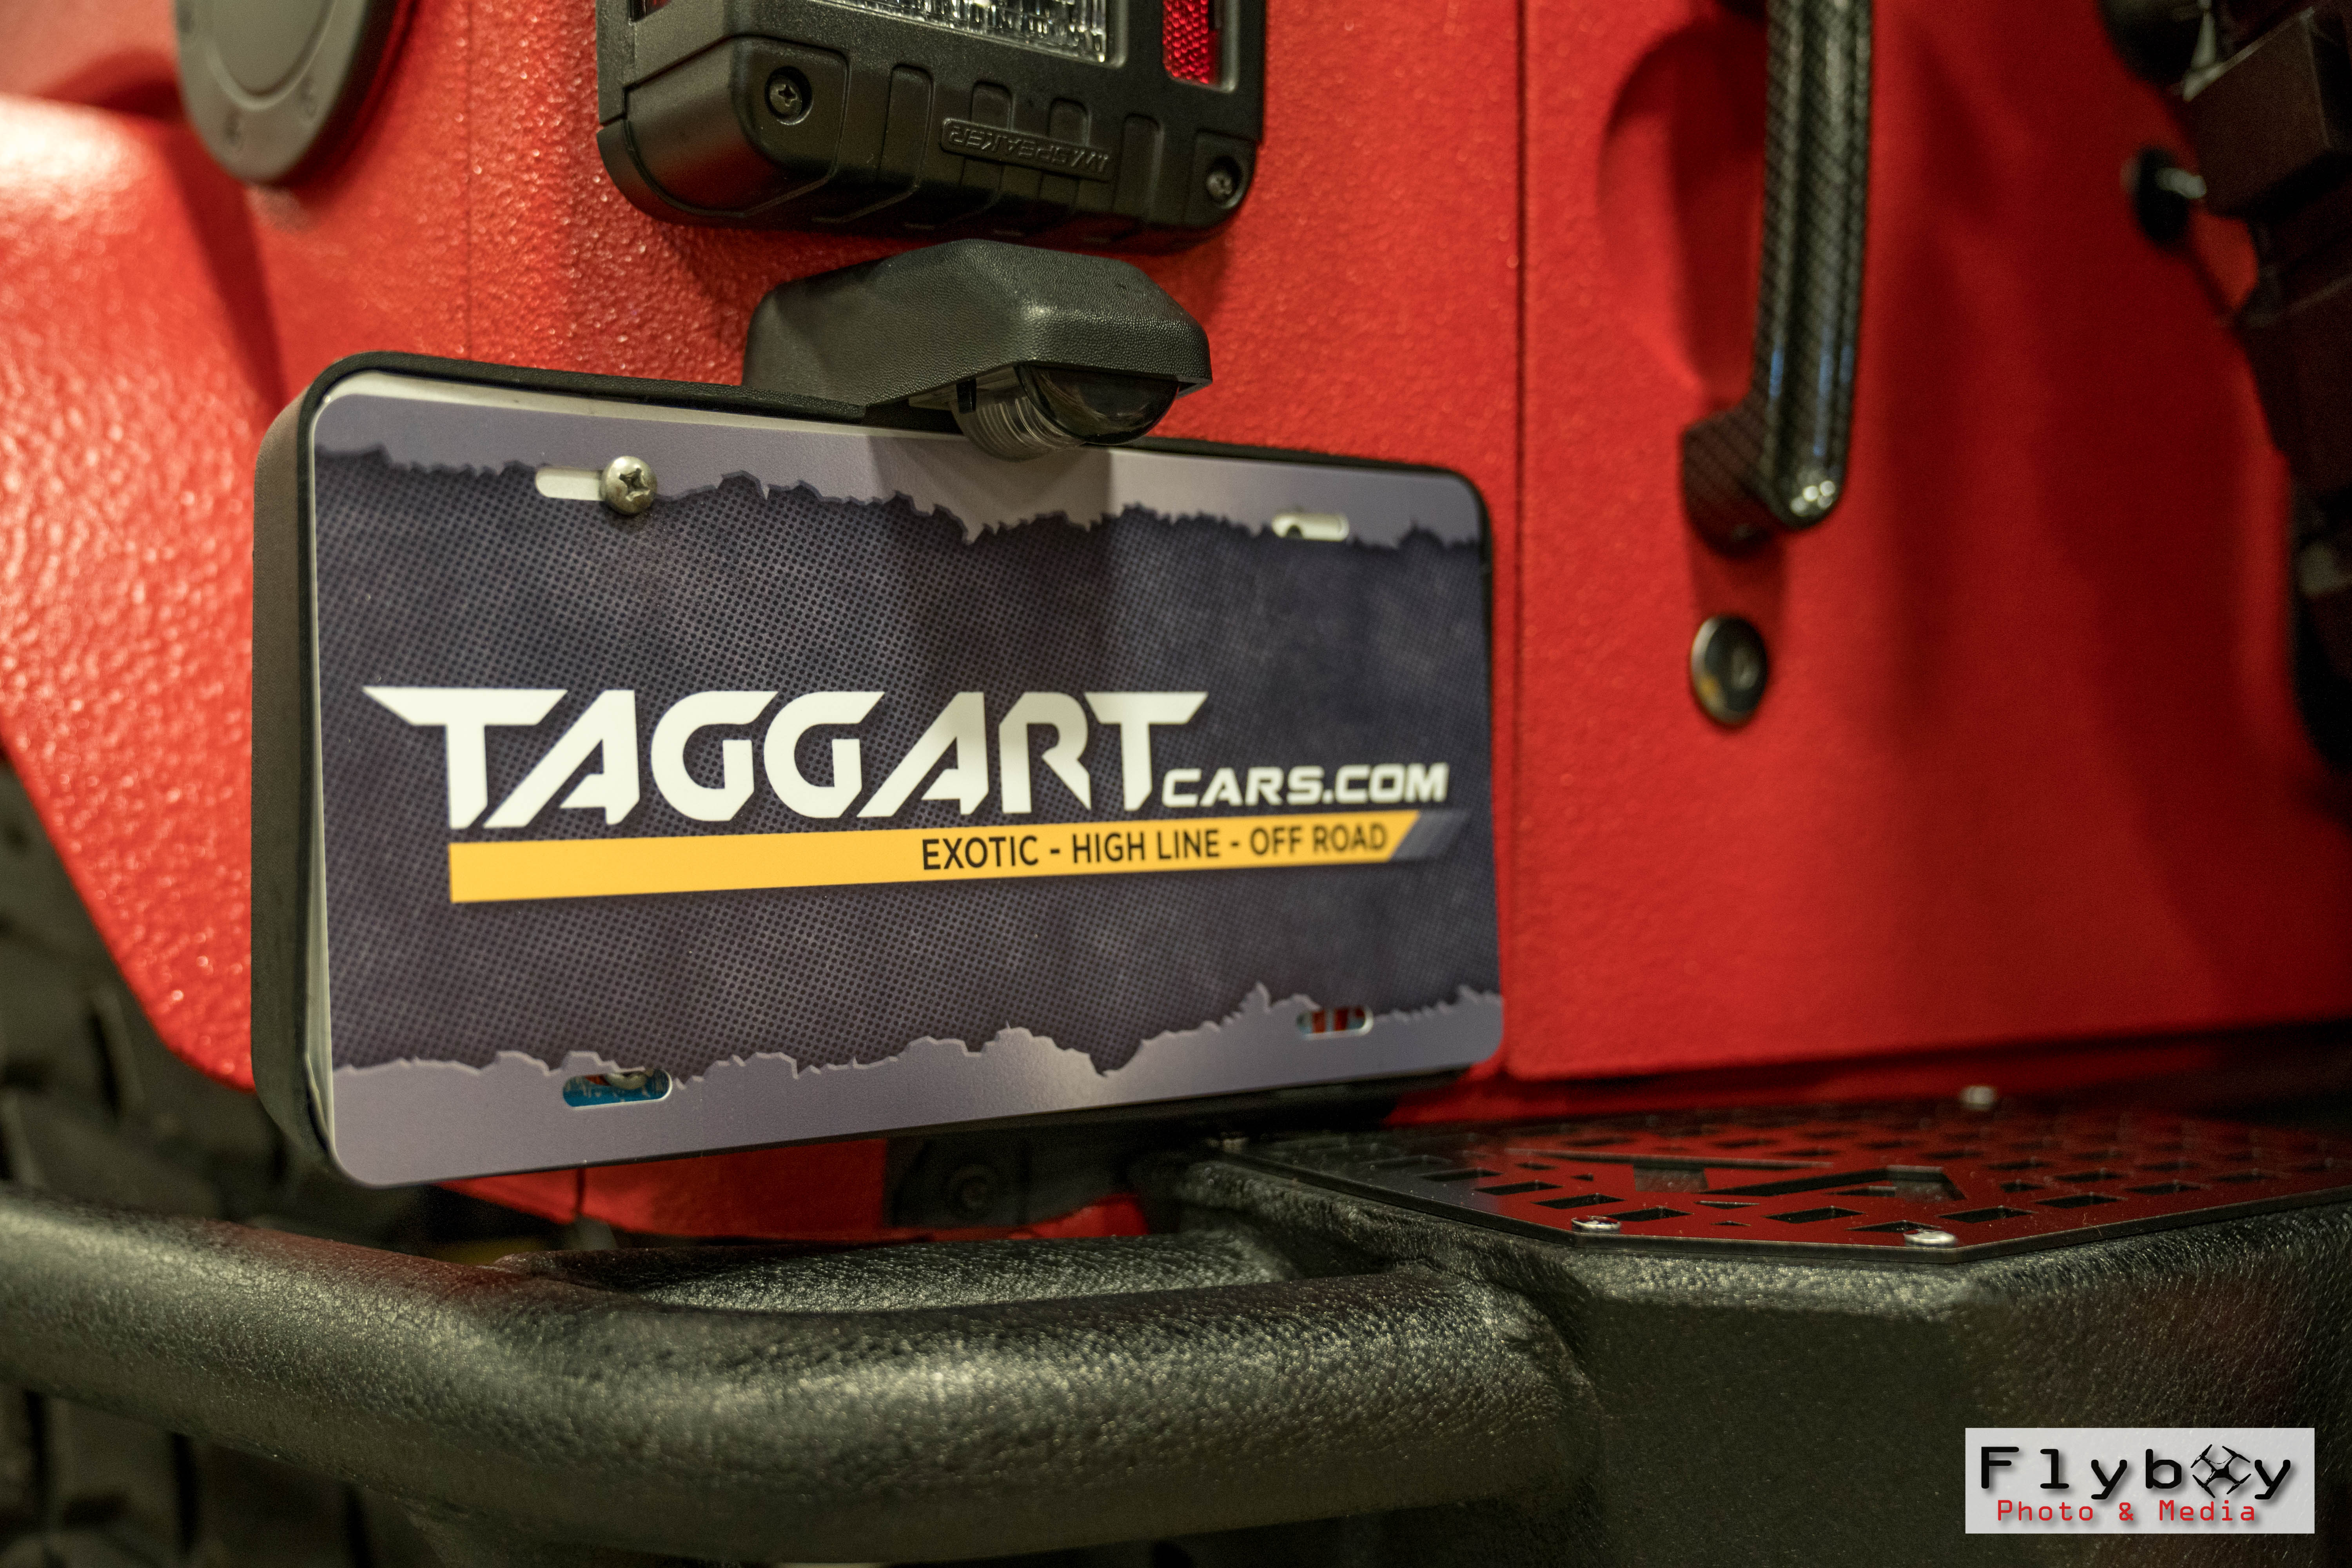 Taggart Cars